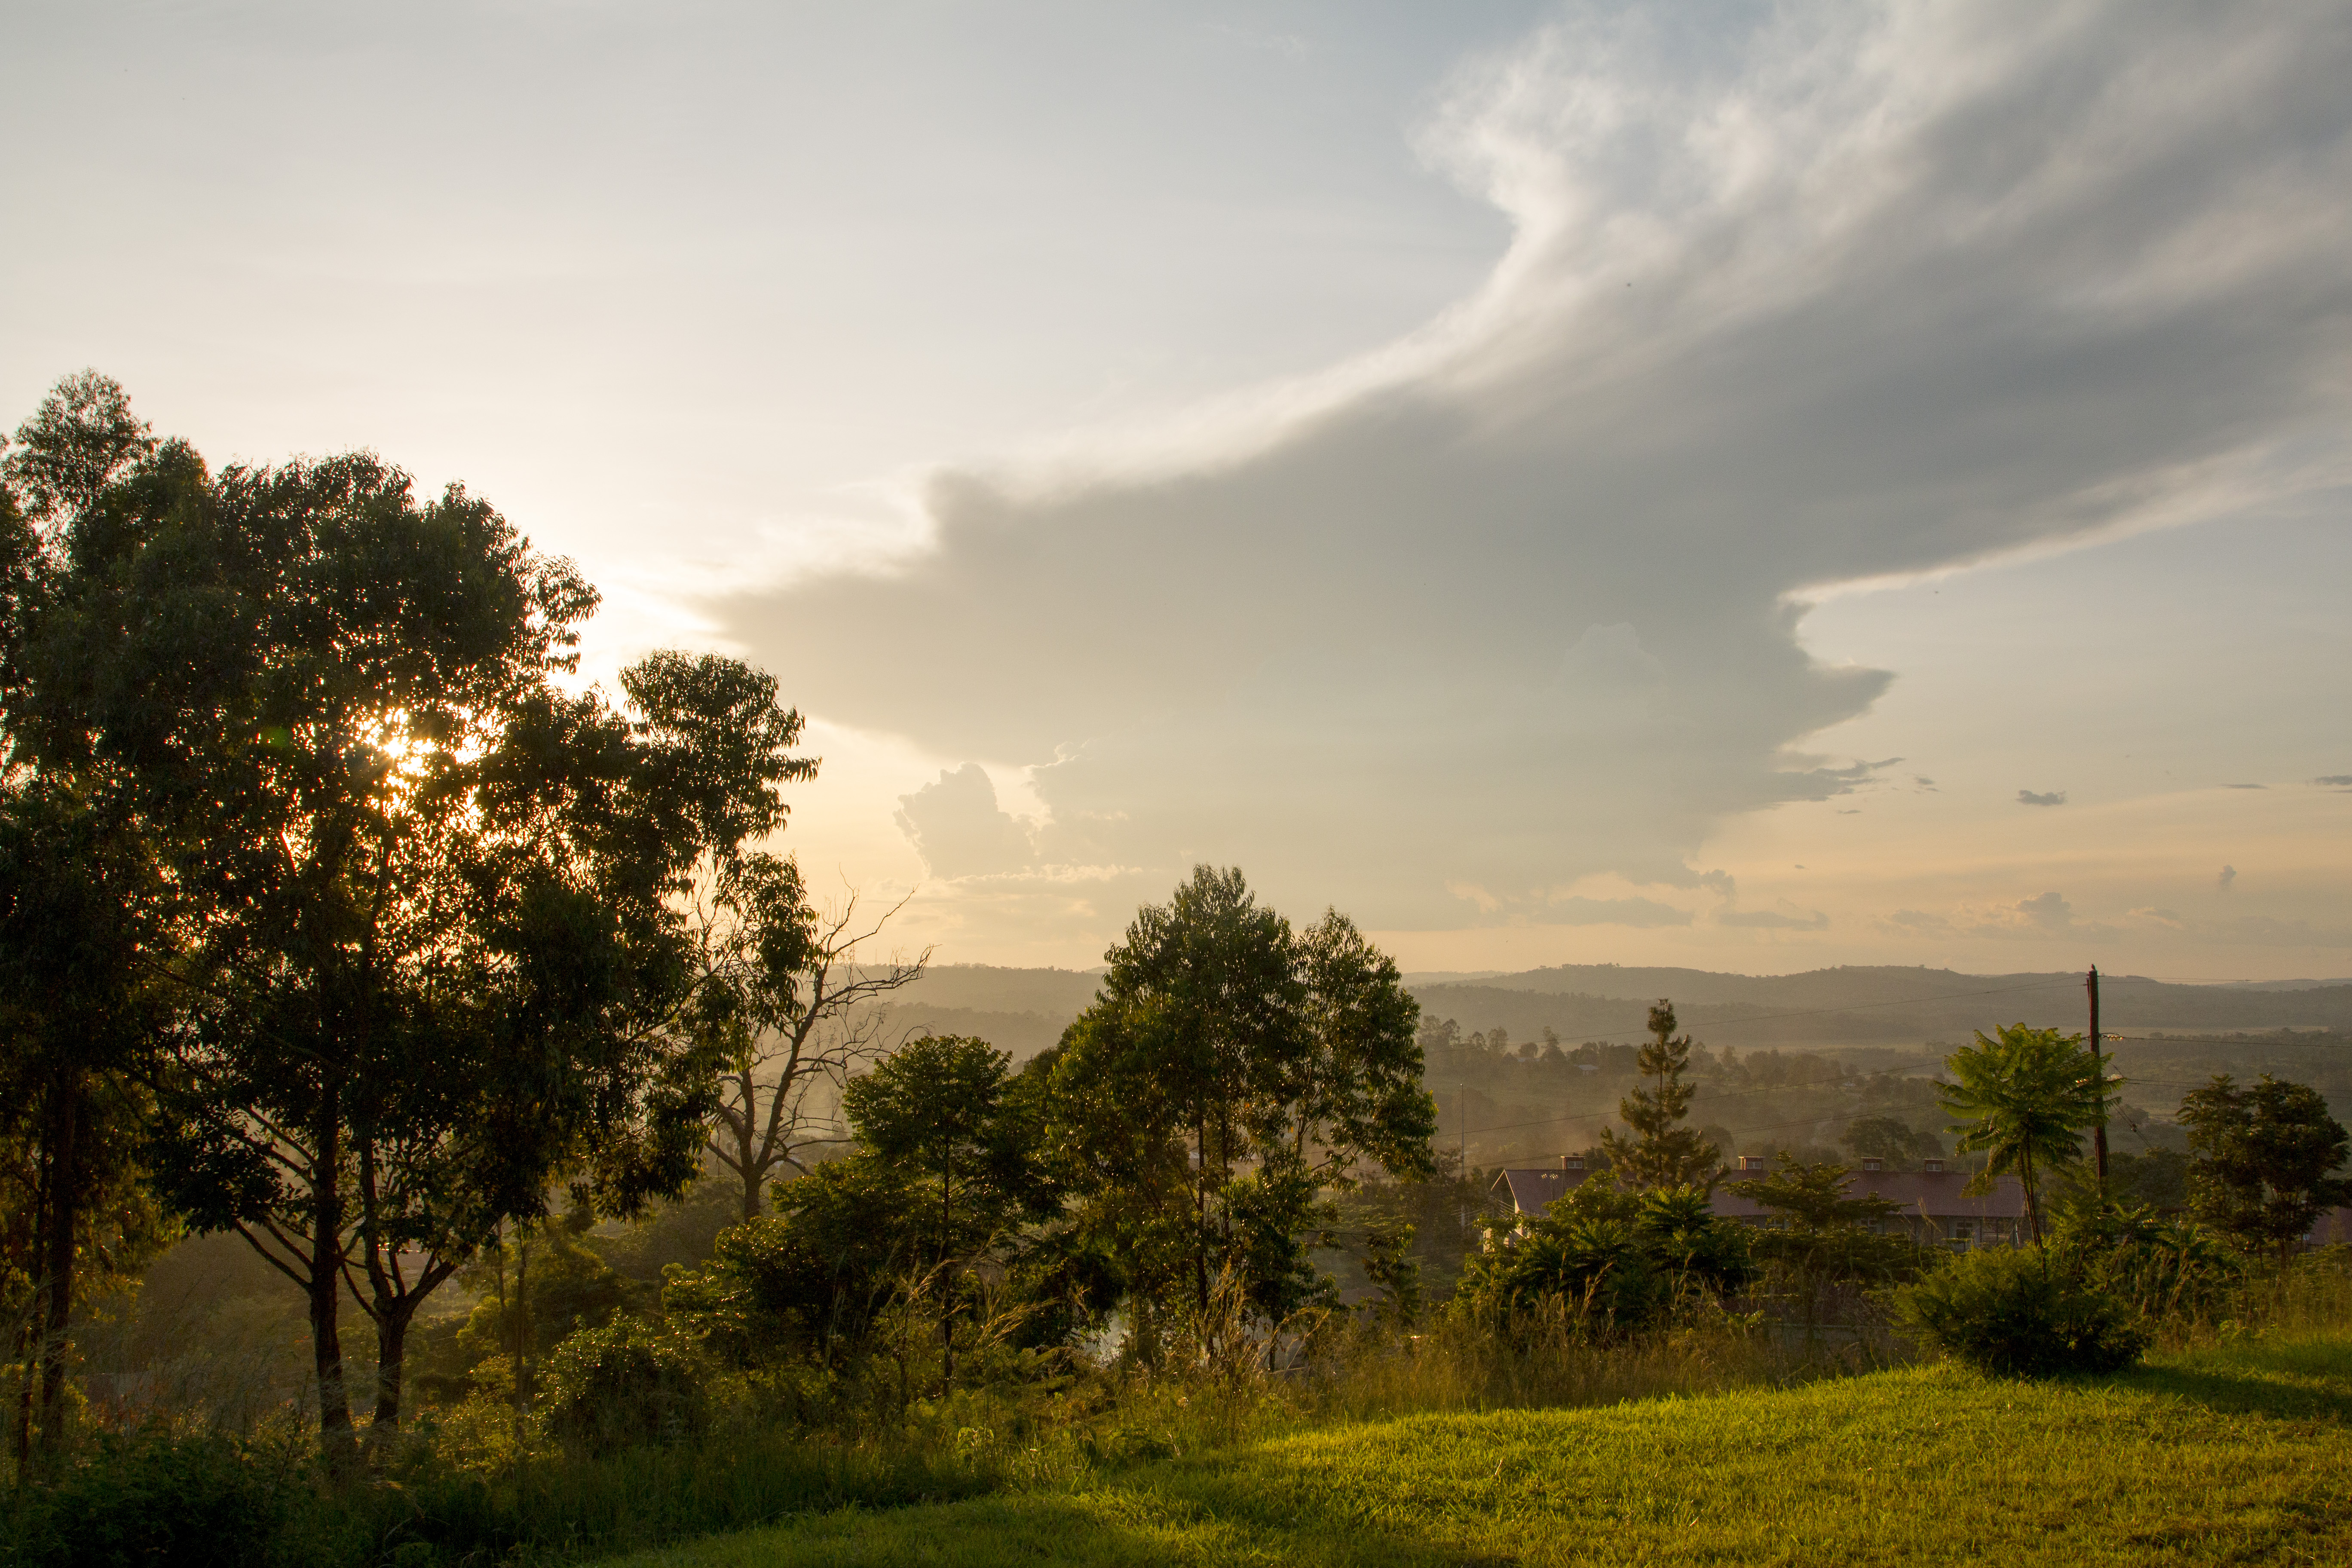 View from the top of Masaka hill at sunset